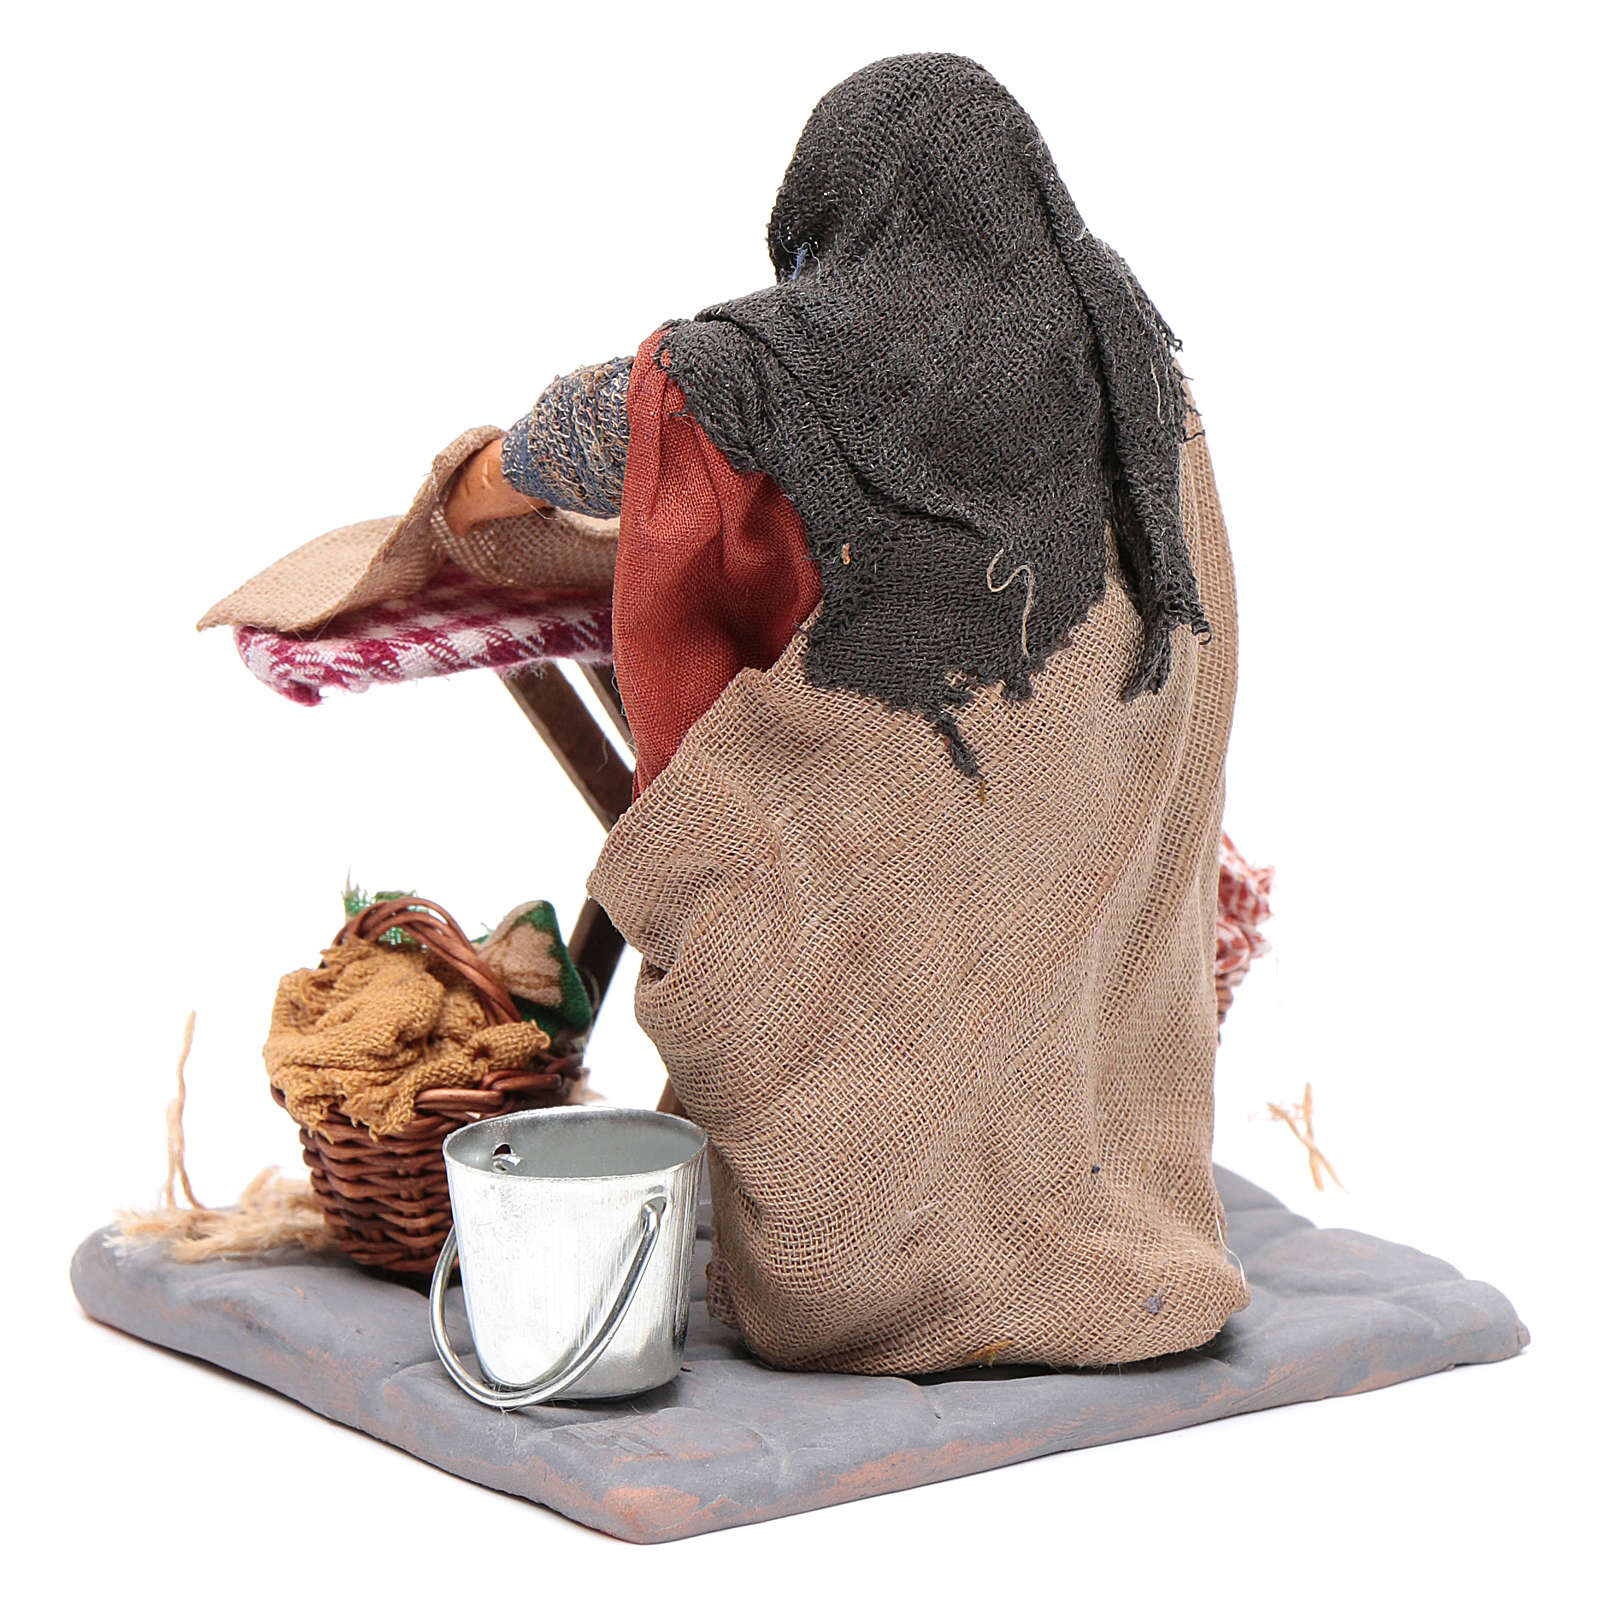 Woman ironing 10cm, Neapolitan Nativity figurine 4